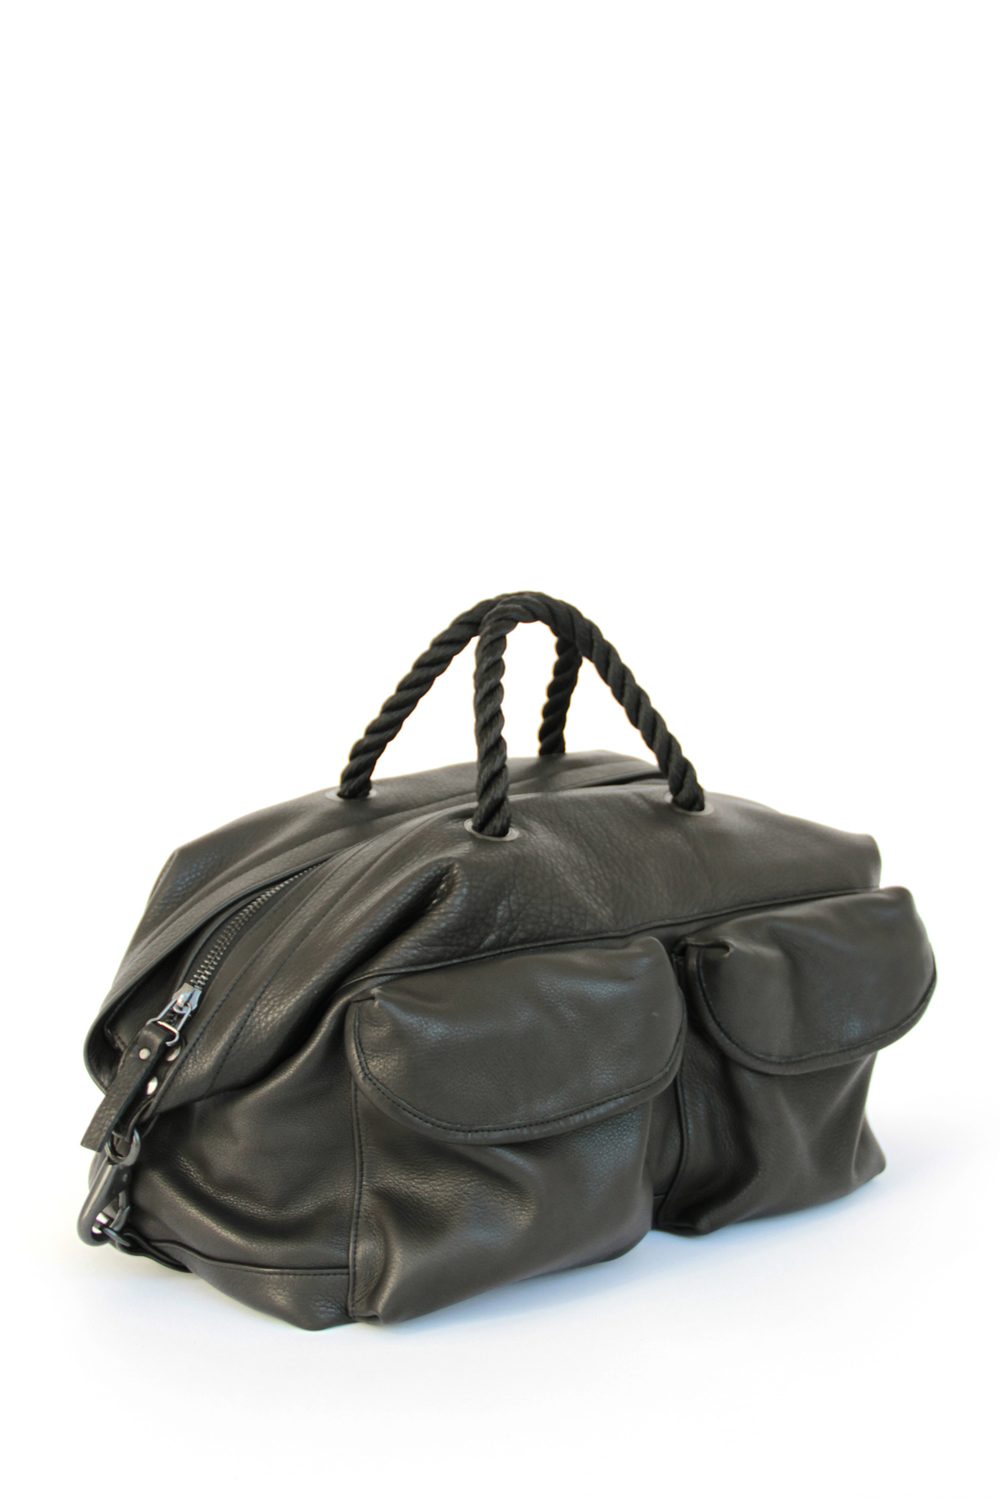 SeaBag_Black_201402_SM.jpg